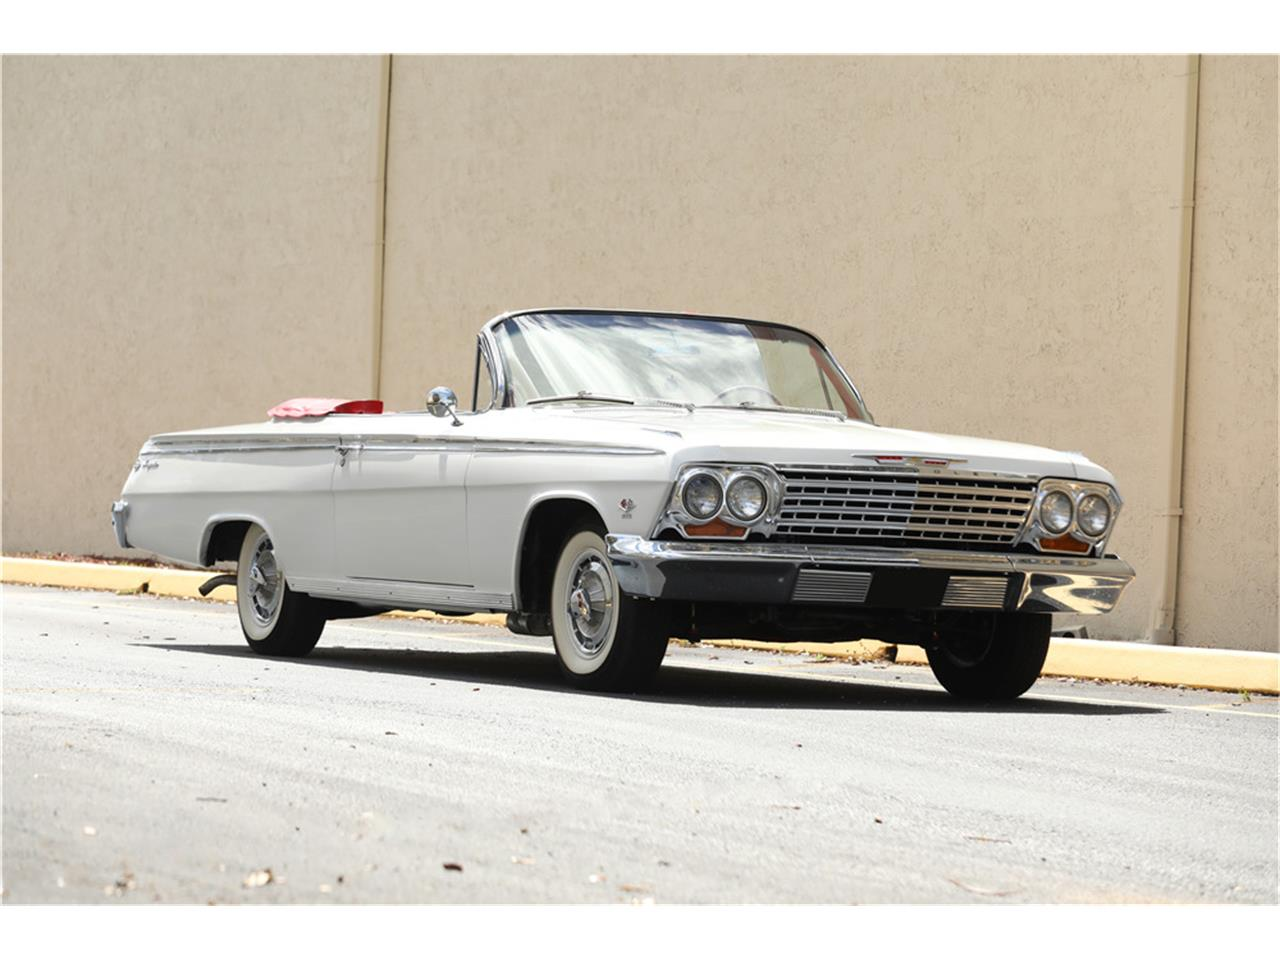 1962 Chevrolet Impala SS for sale in West Palm Beach, FL